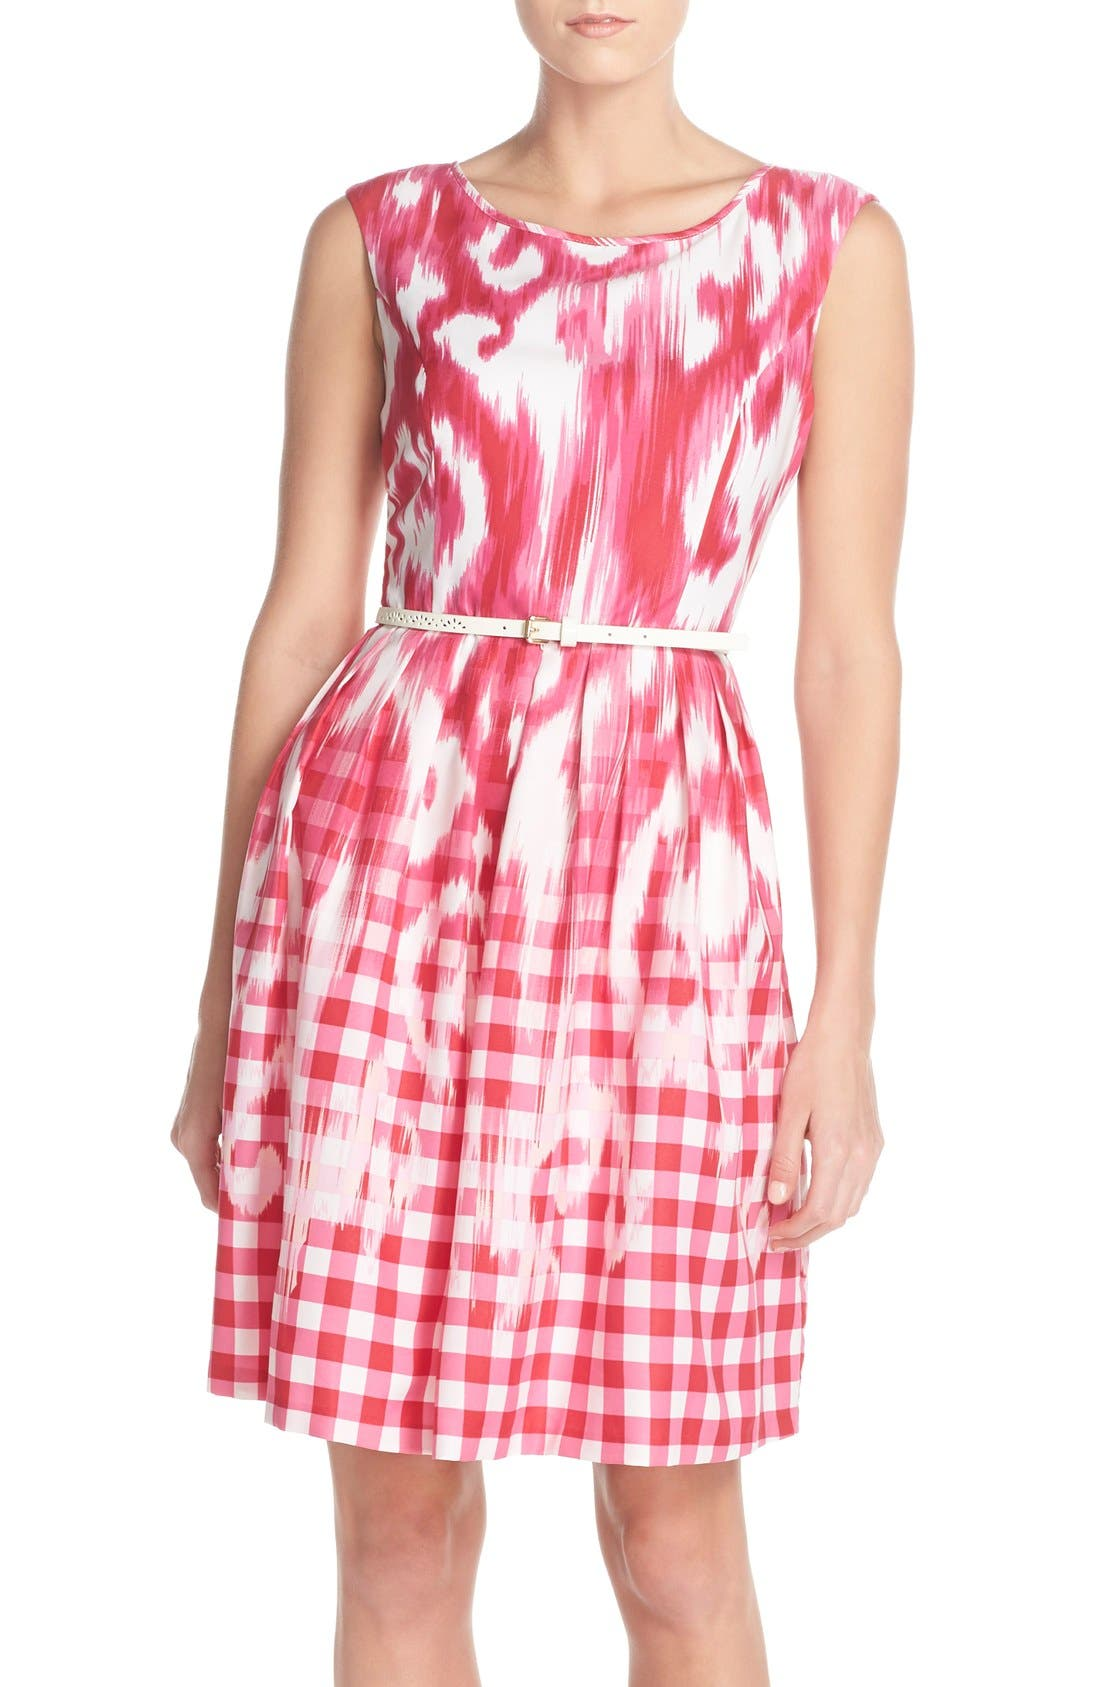 Alternate Image 1 Selected - Ellen Tracy Belted Mixed Print Faille Fit & Flare Dress (Regular & Petite)